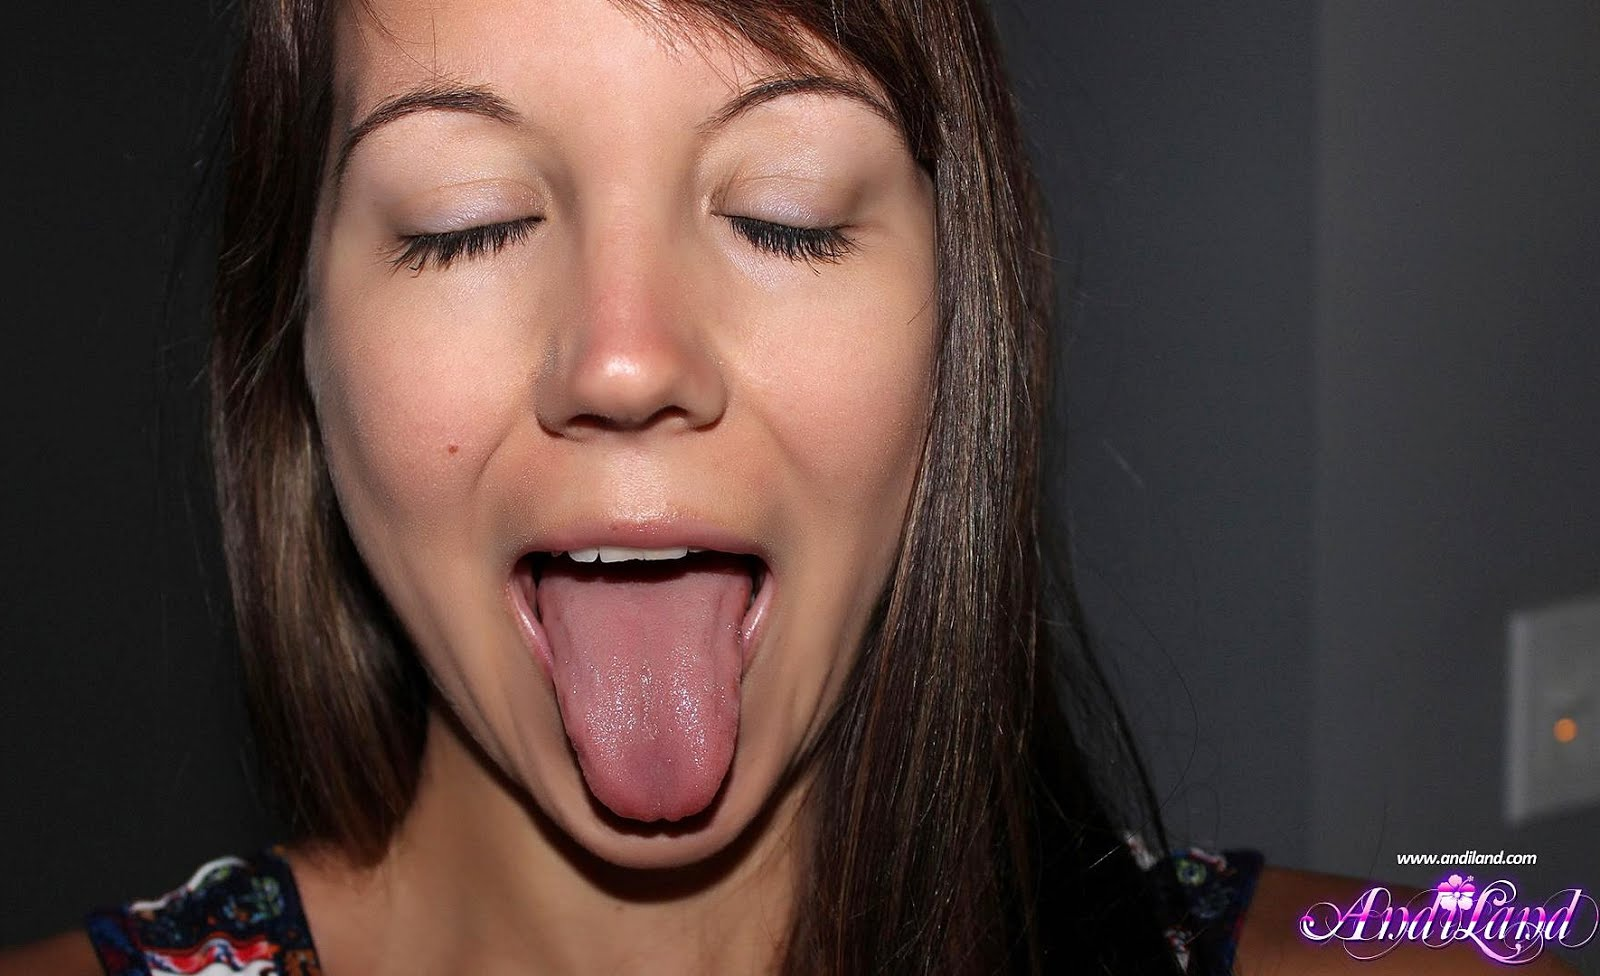 Andi - Shows Clean Tongue